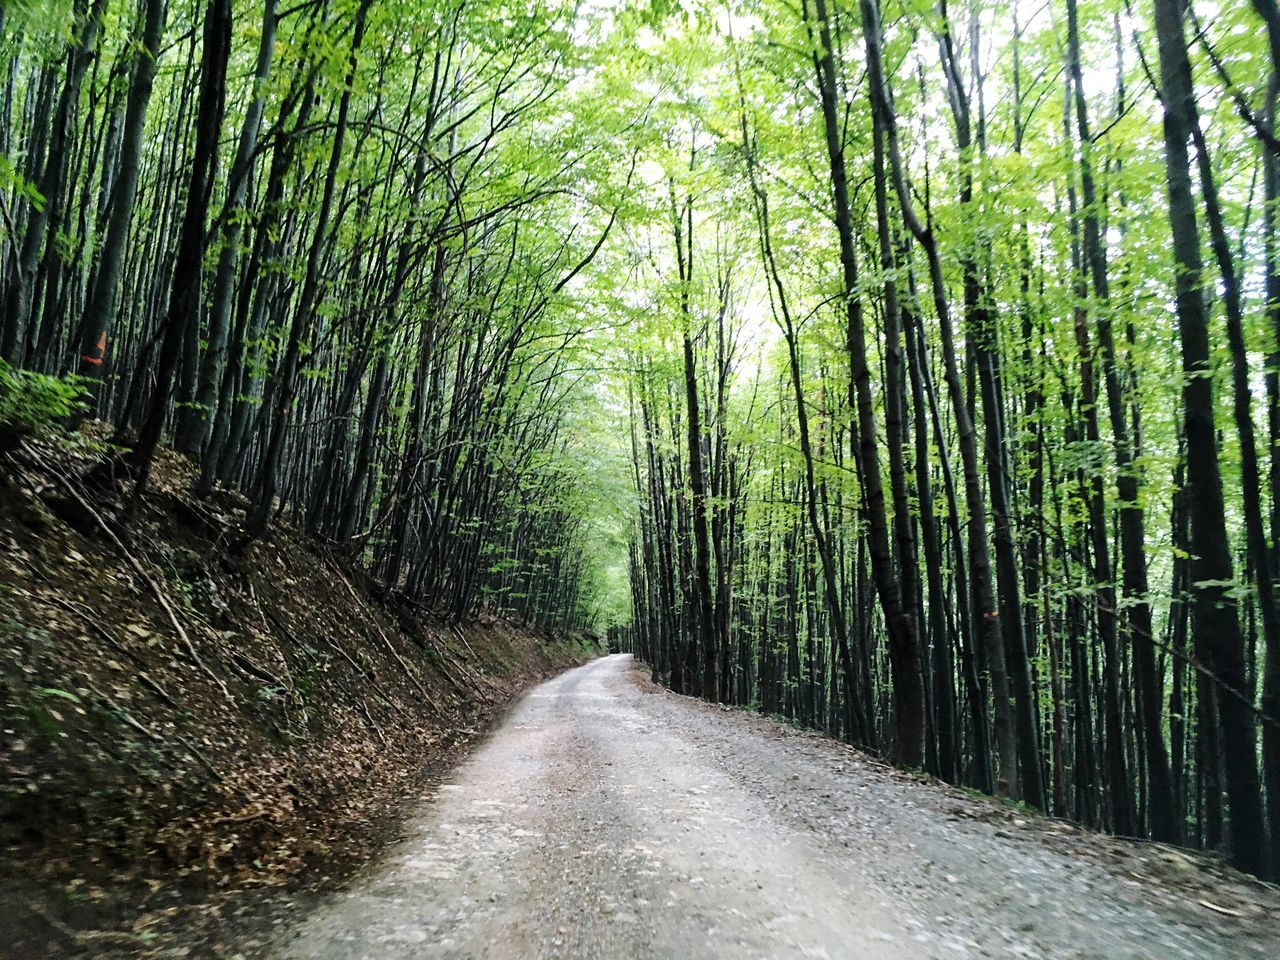 forest, nature, tree, the way forward, tranquility, beauty in nature, tree trunk, tranquil scene, outdoors, bamboo grove, growth, day, no people, green color, bamboo - plant, scenics, road